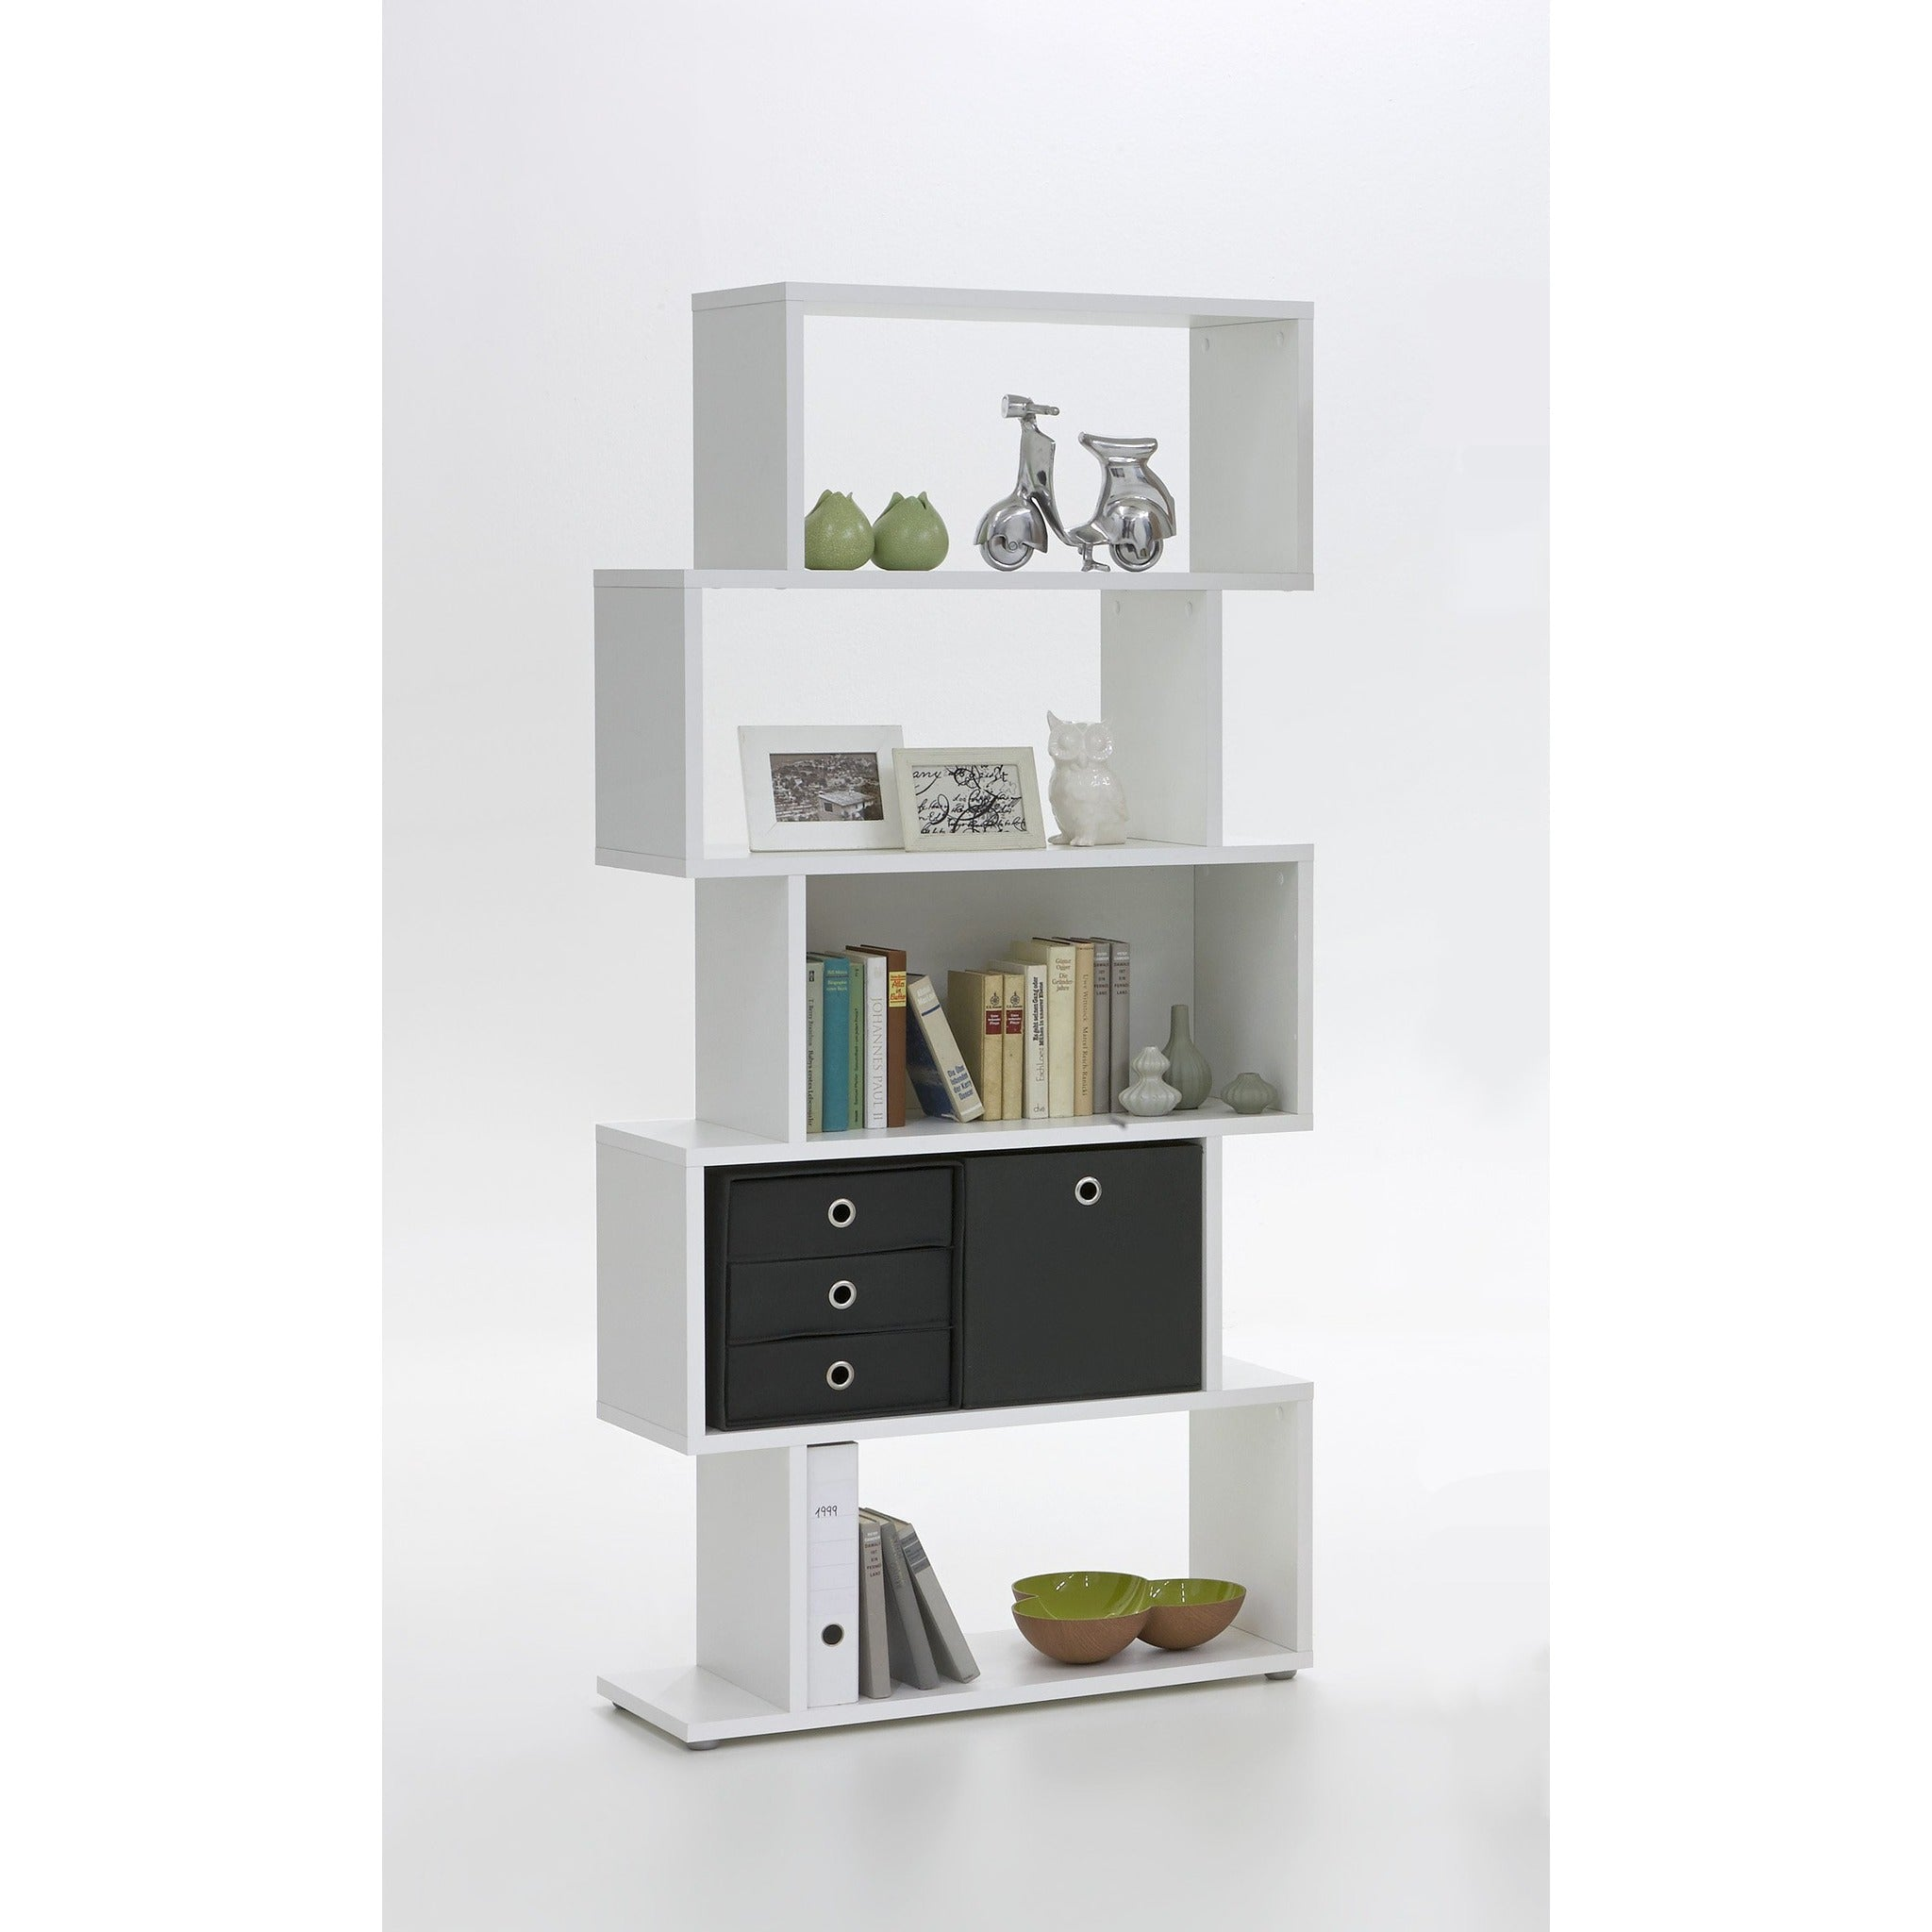 baskets shelf shel design storagee a with furniture cubby better cube then much organizer toy together home gives shelves decor designs along storage and cubes or wells unit look engrossing office wicker as ikea